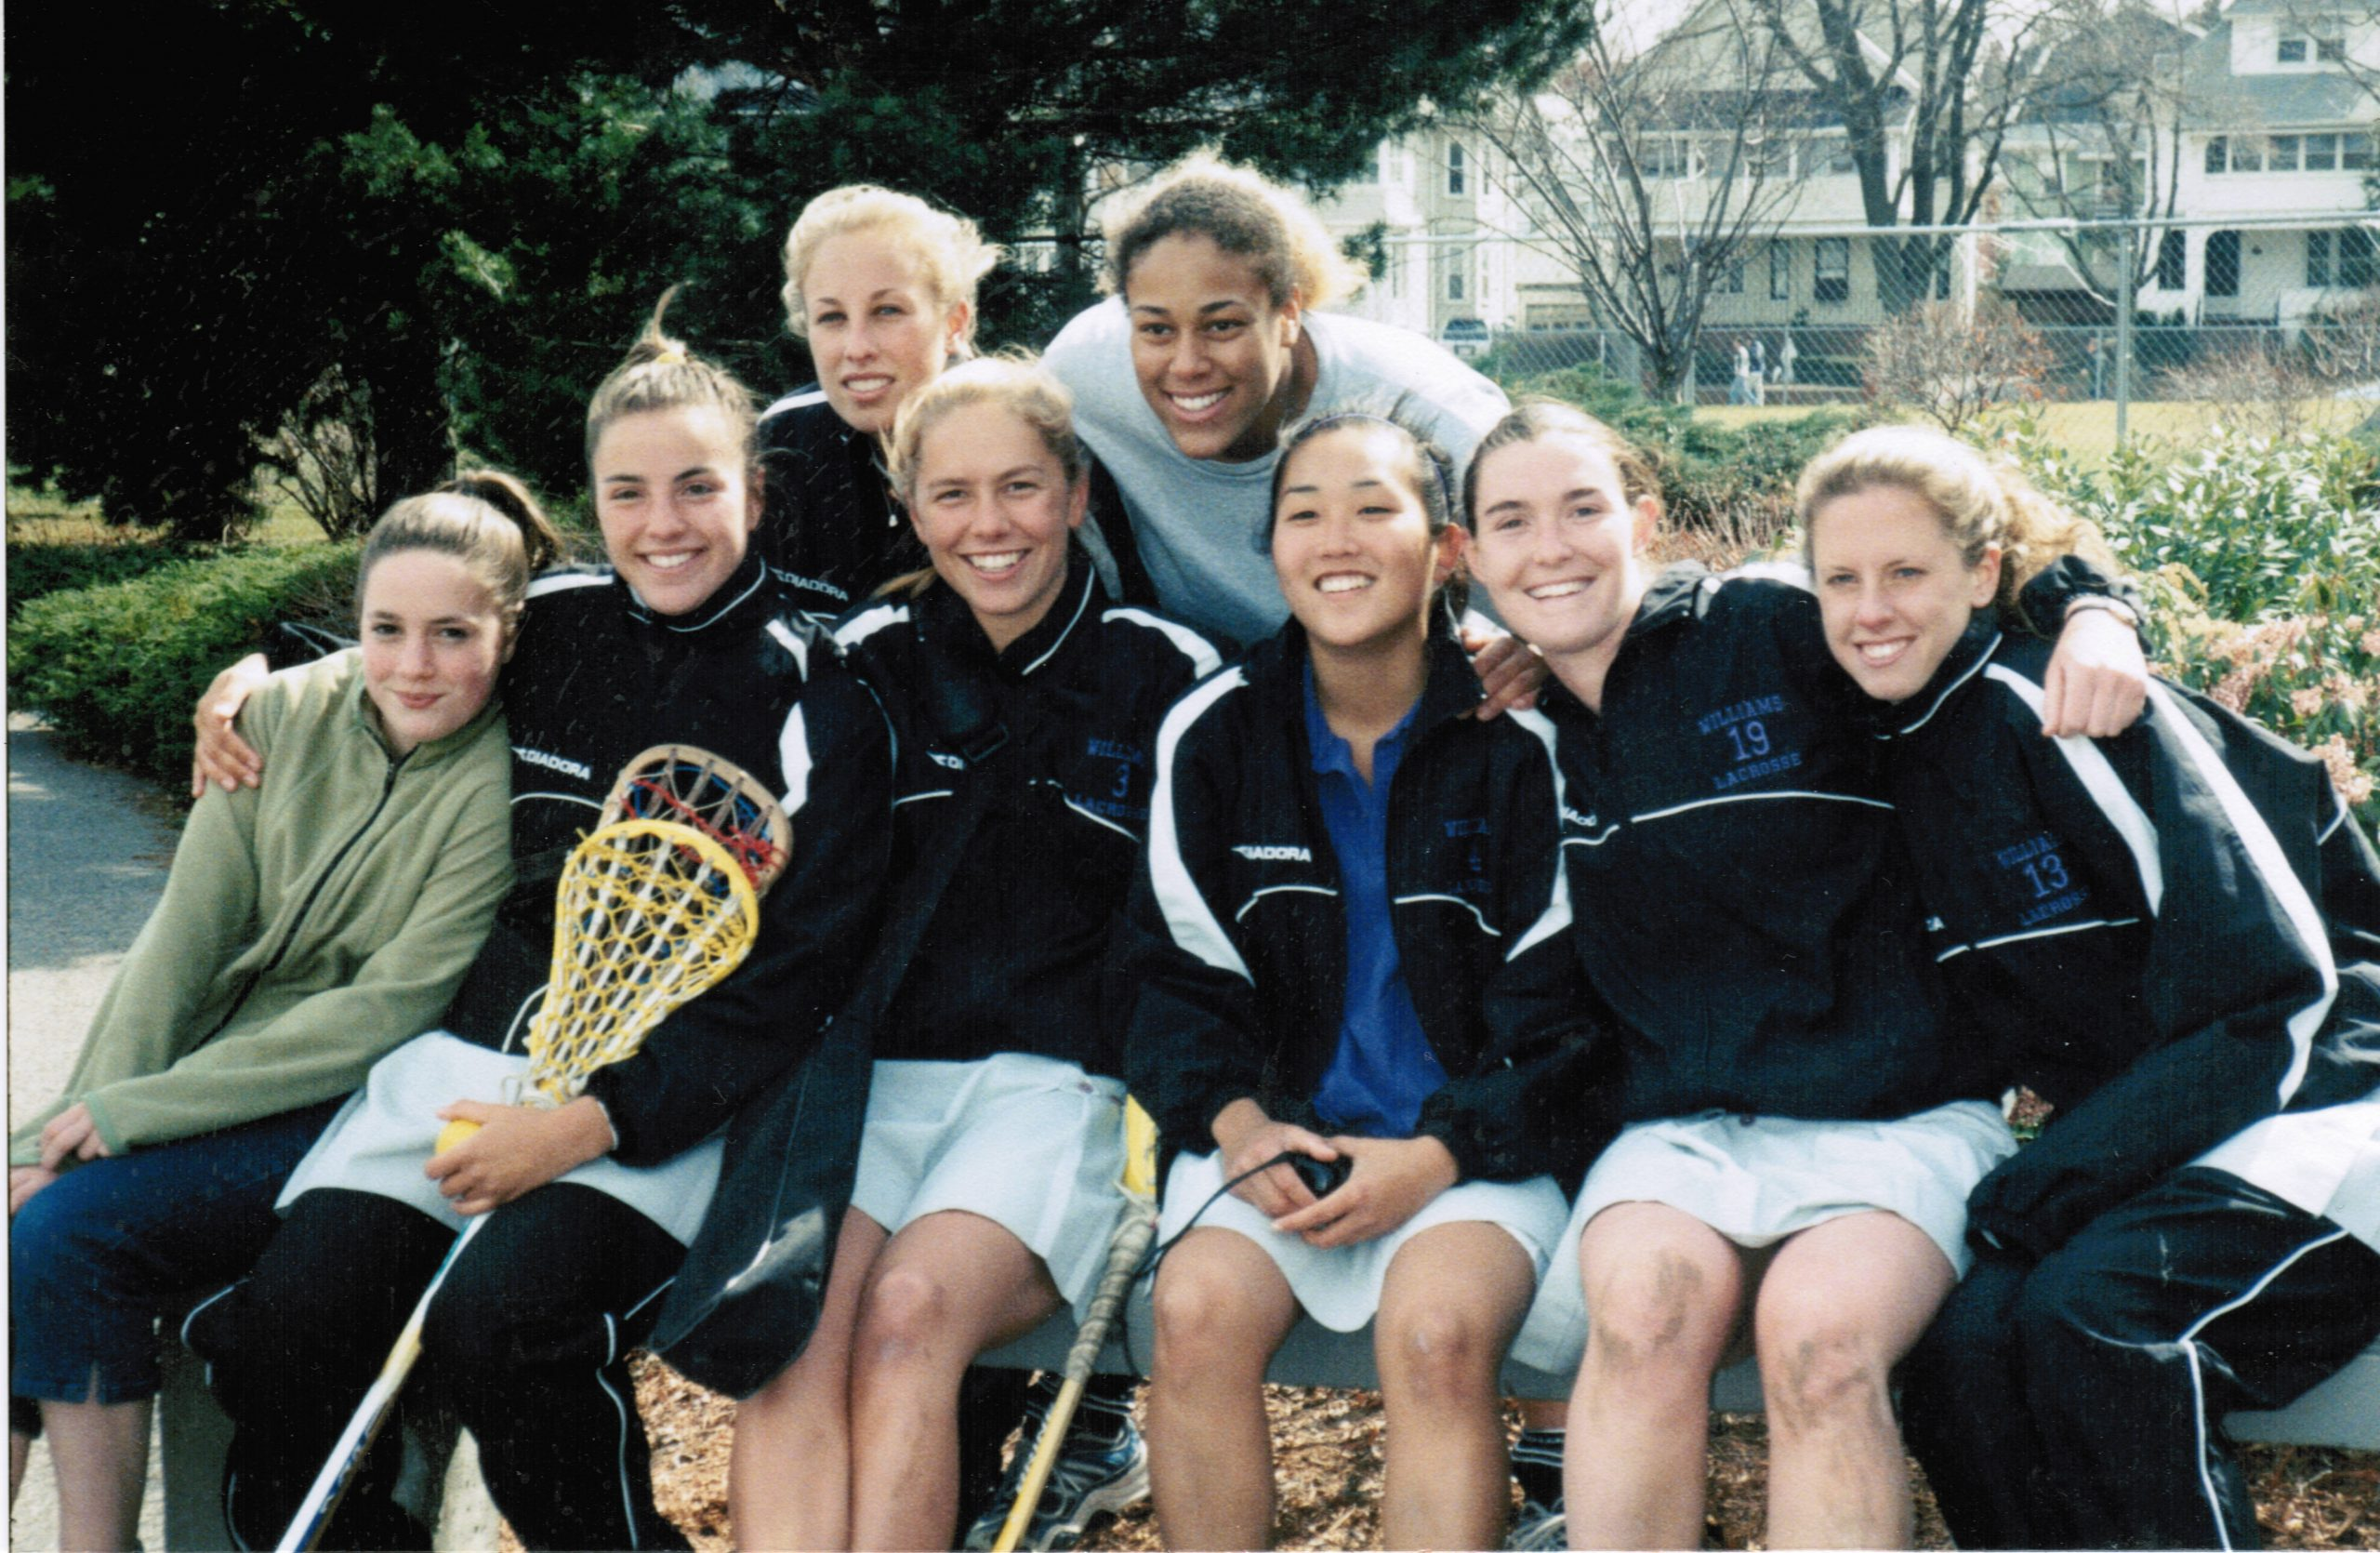 Women's Lacrosse Players from 2001